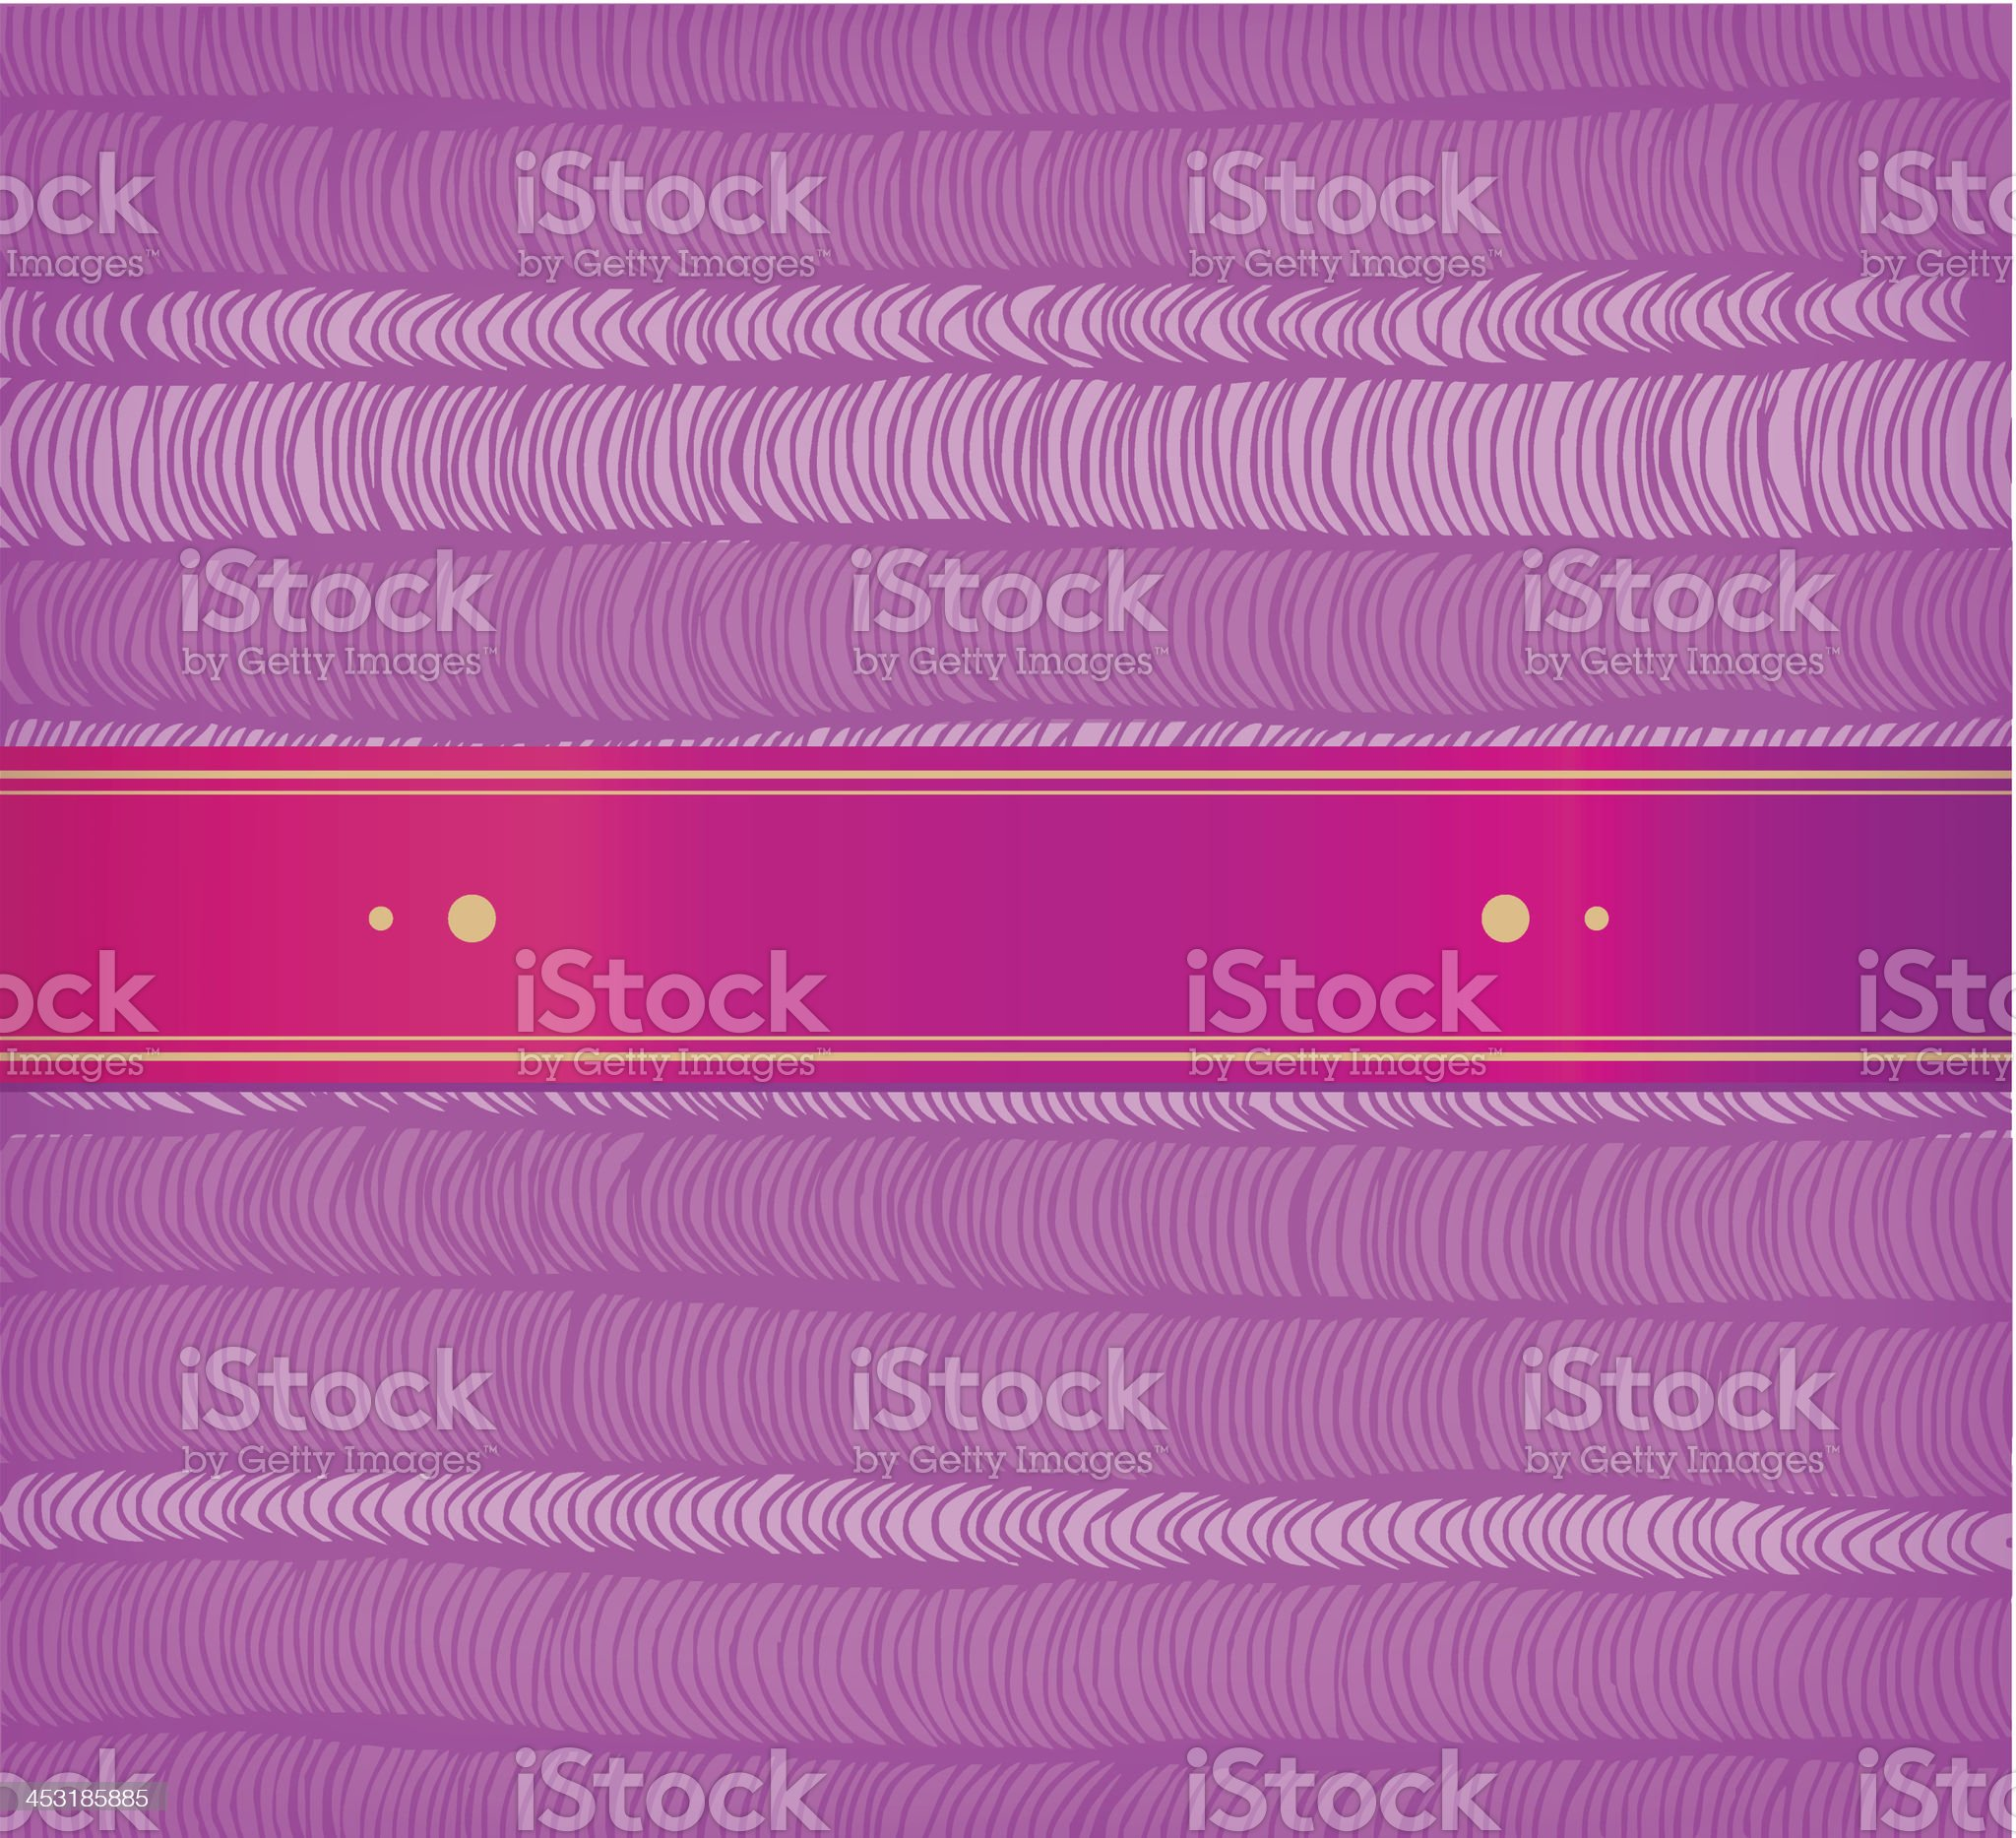 Card template with rows hand drawn horizontal folds royalty-free stock vector art